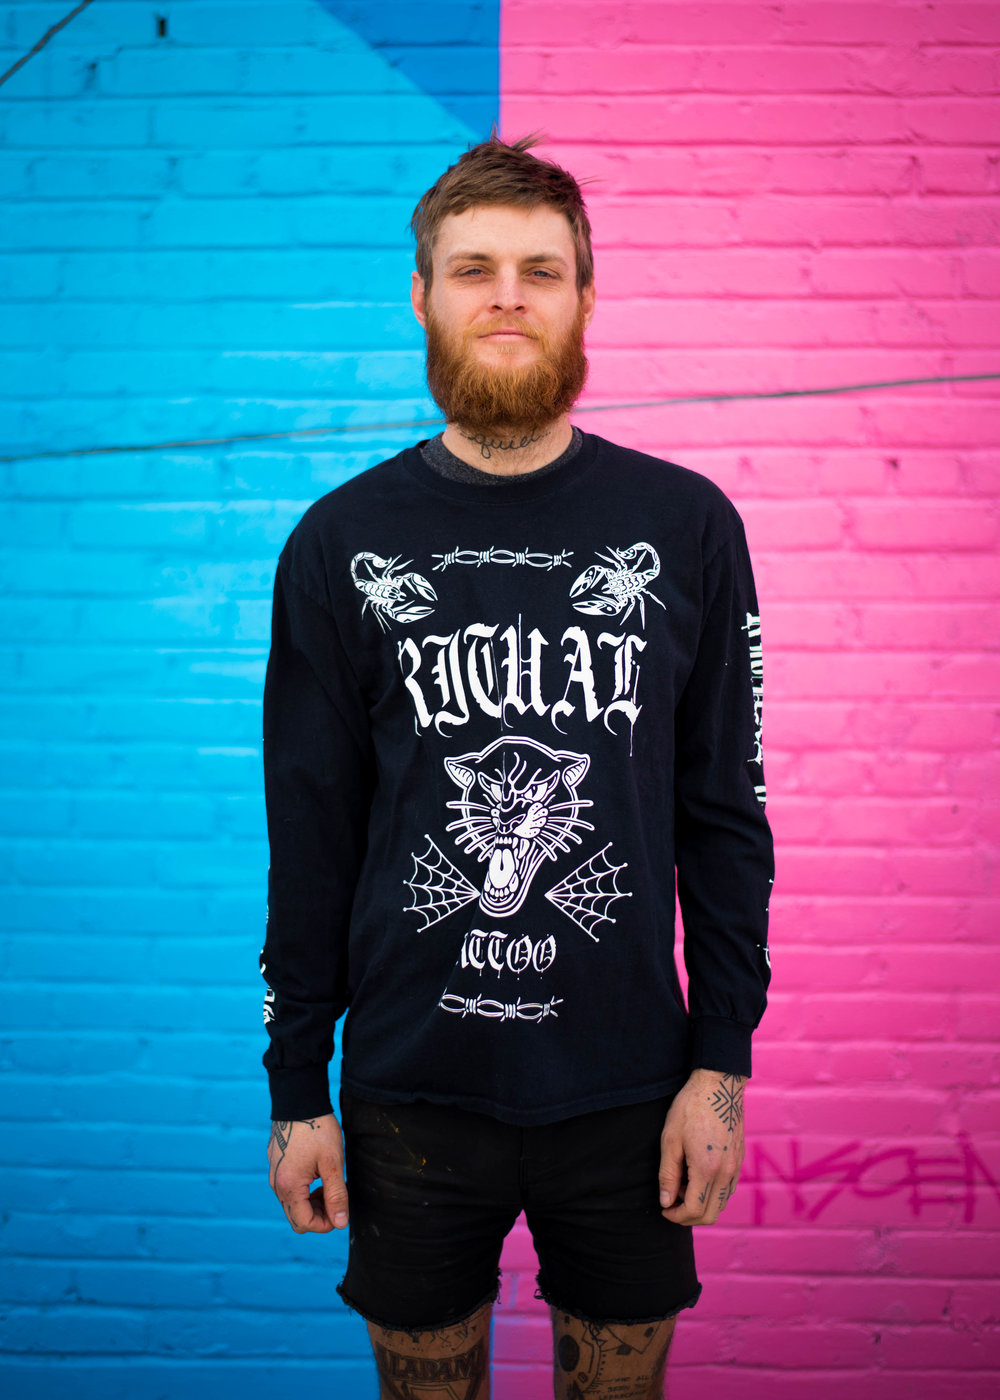 Ritual Tattoo. Print method BLEACH. Screen printed on a Gildan long sleeve shirt. Printed by A Small Print Shop.